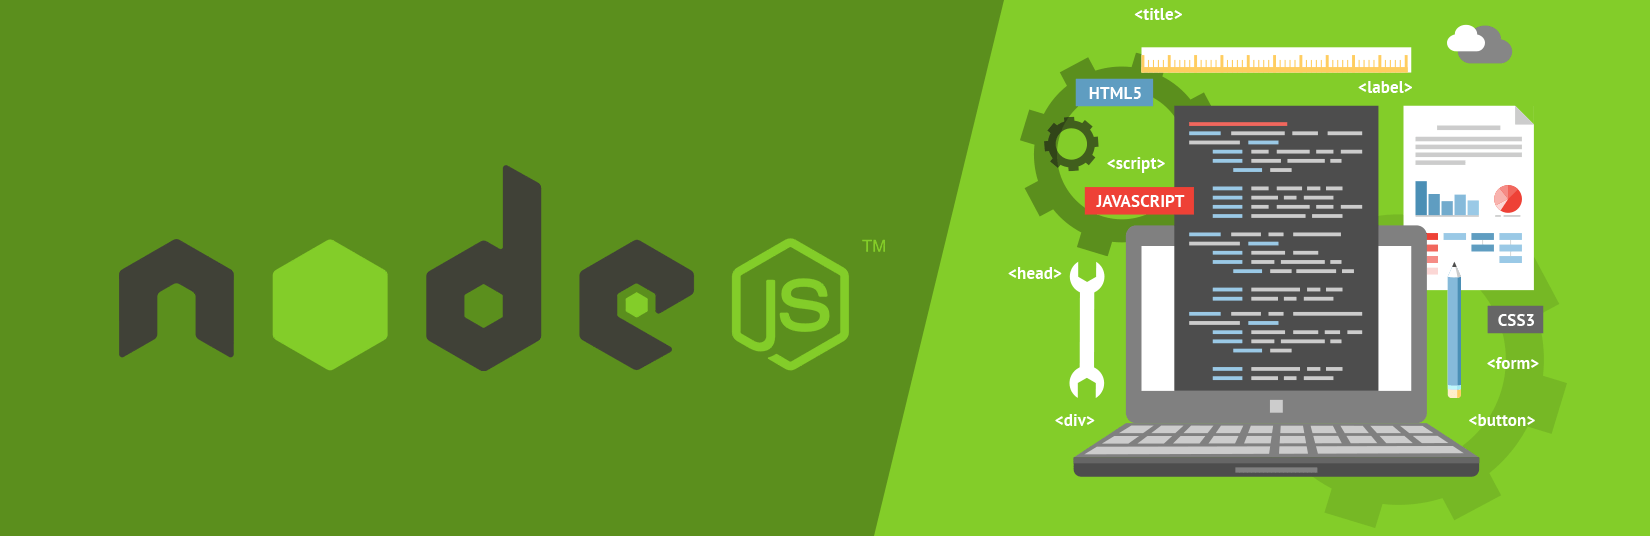 ALL YOU WANTED TO KNOW ABOUT NODE.JS